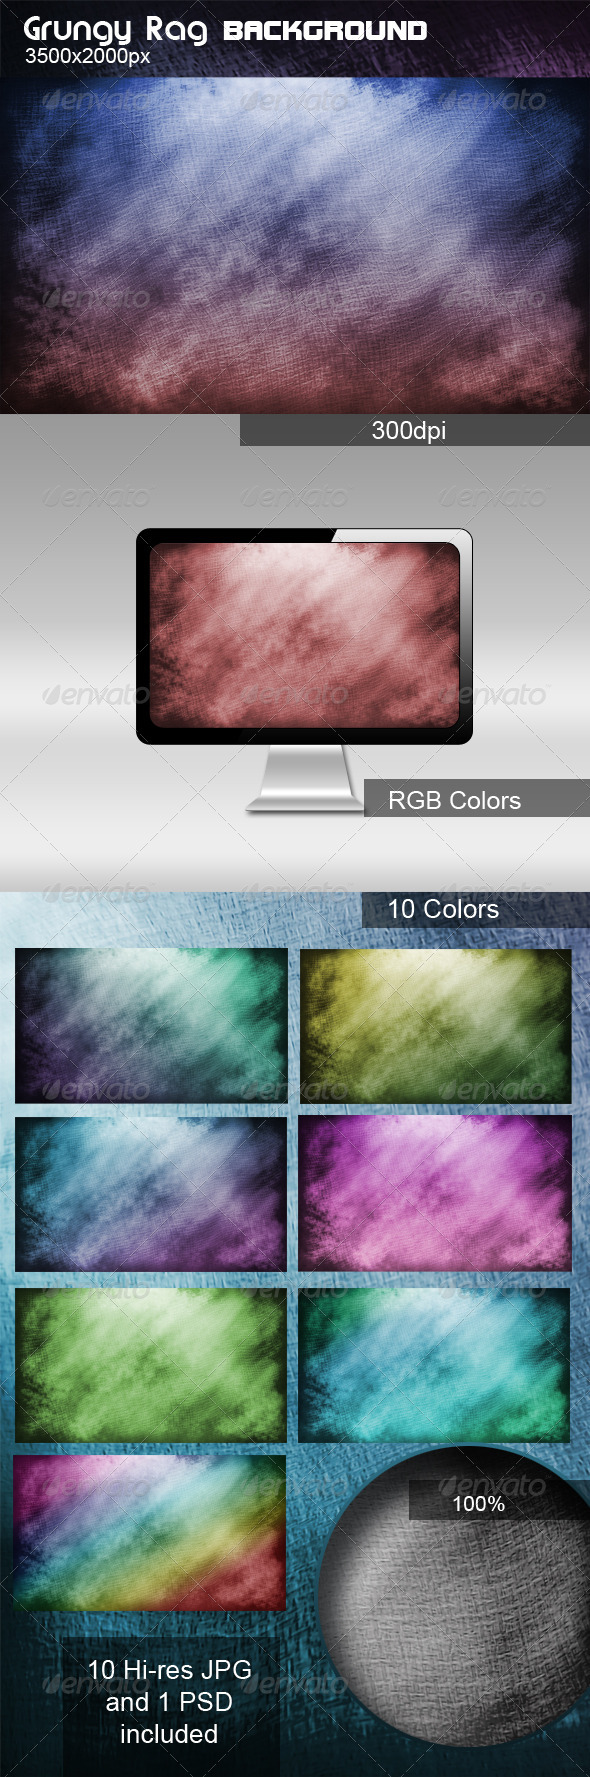 Grungy Rag Background - Urban Backgrounds